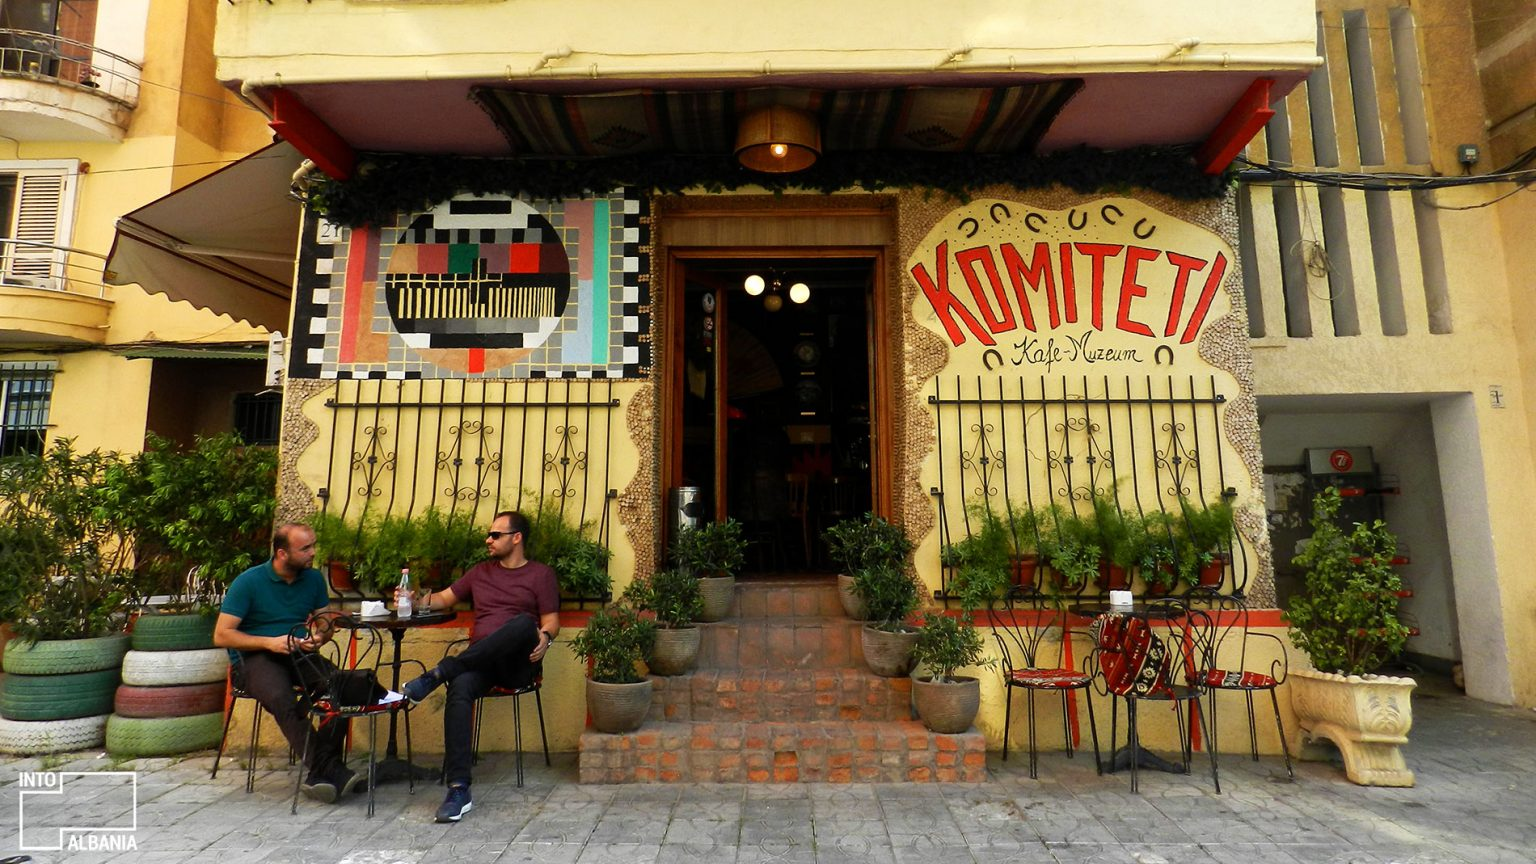 Café-Museum Komiteti, Tirana. Photo by IntoAlbania.